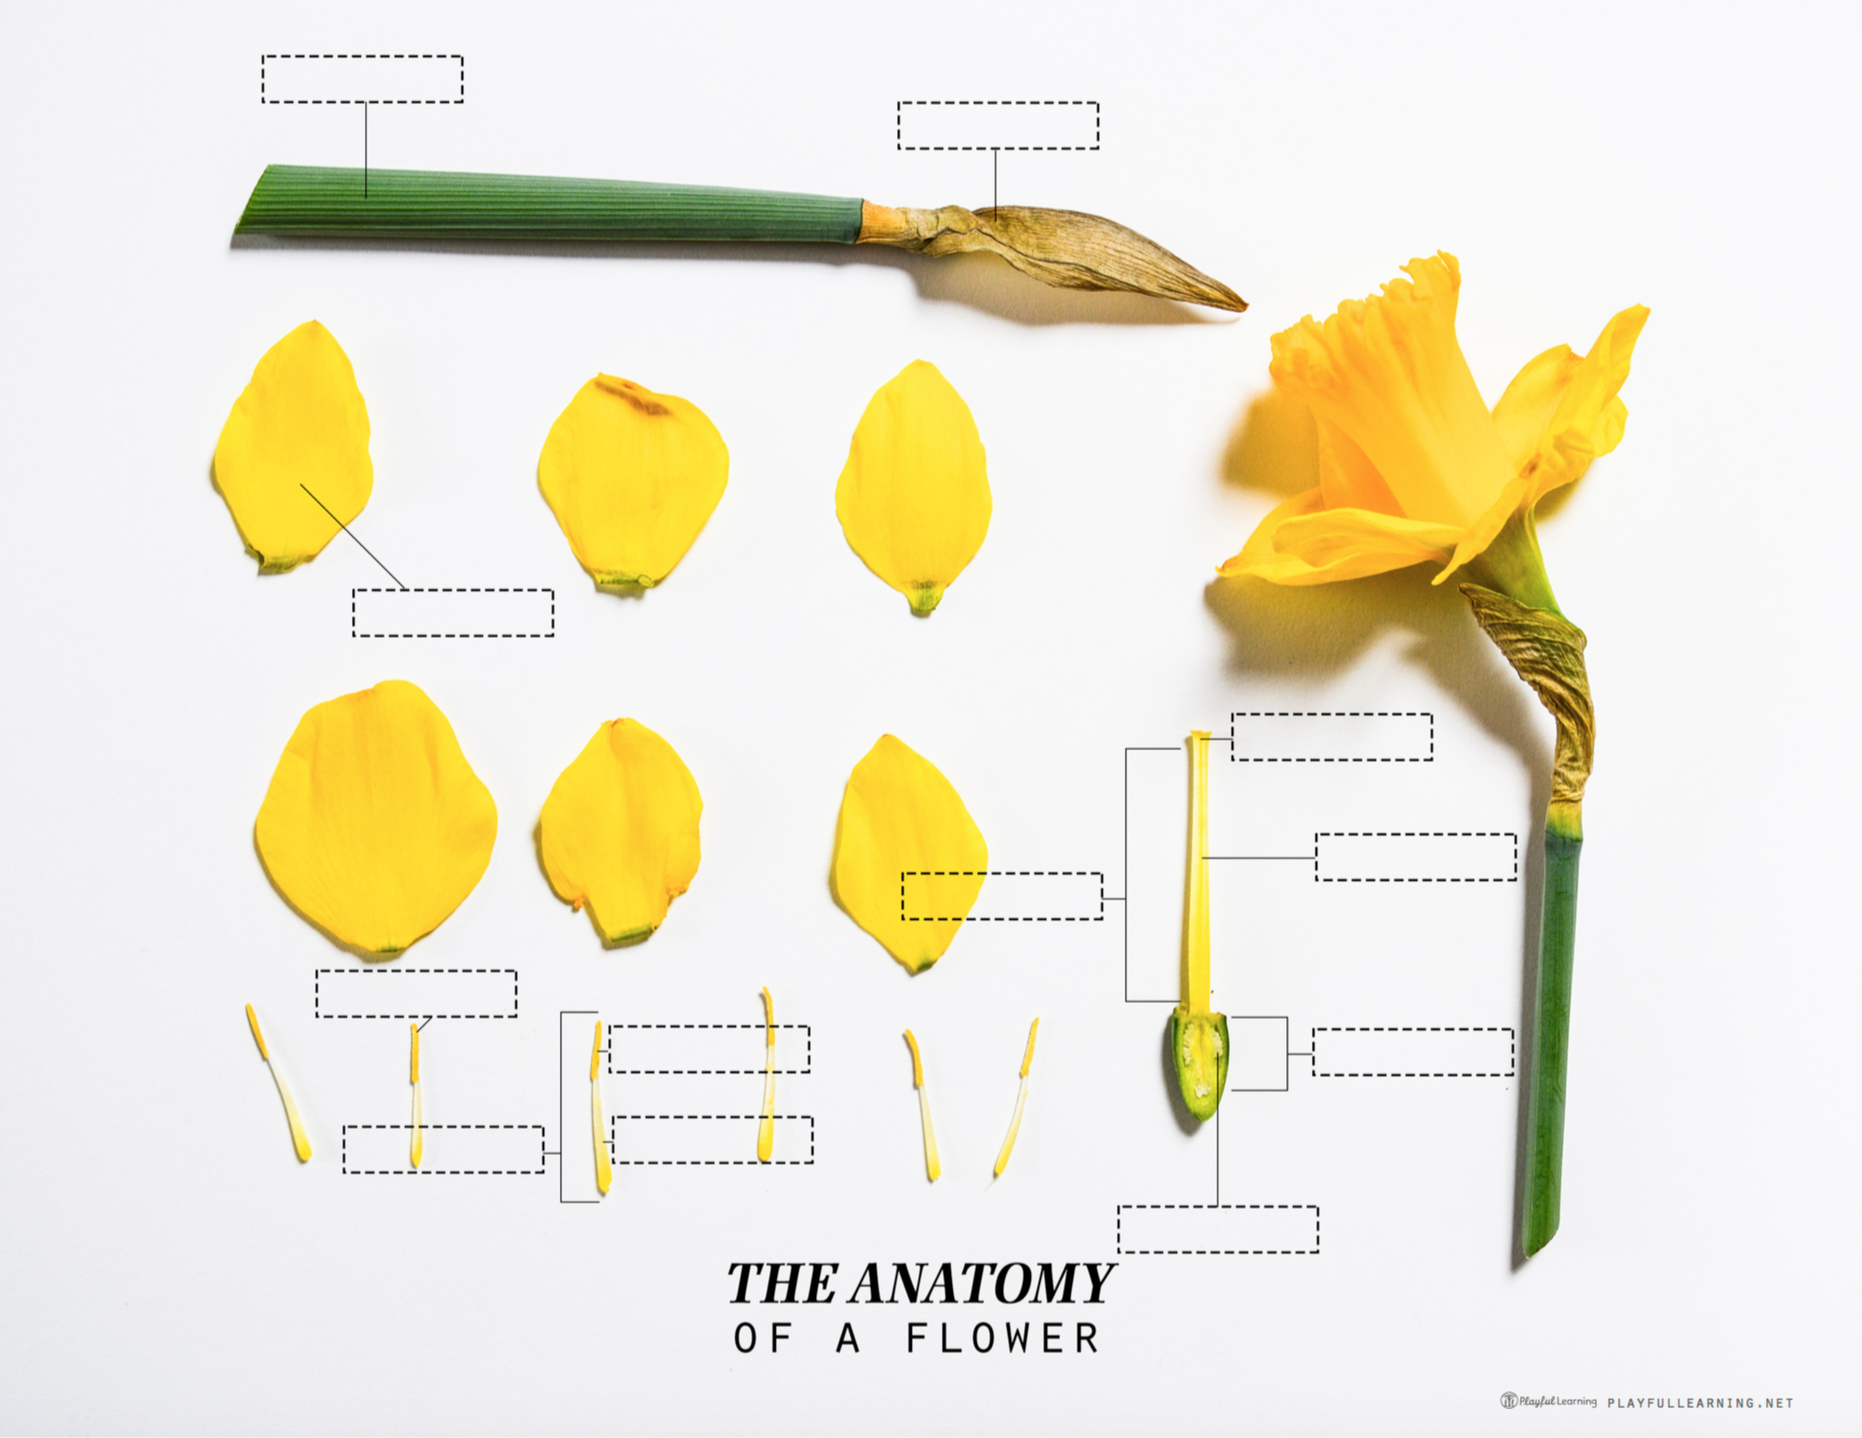 Playful Learning: Parts of a Flower